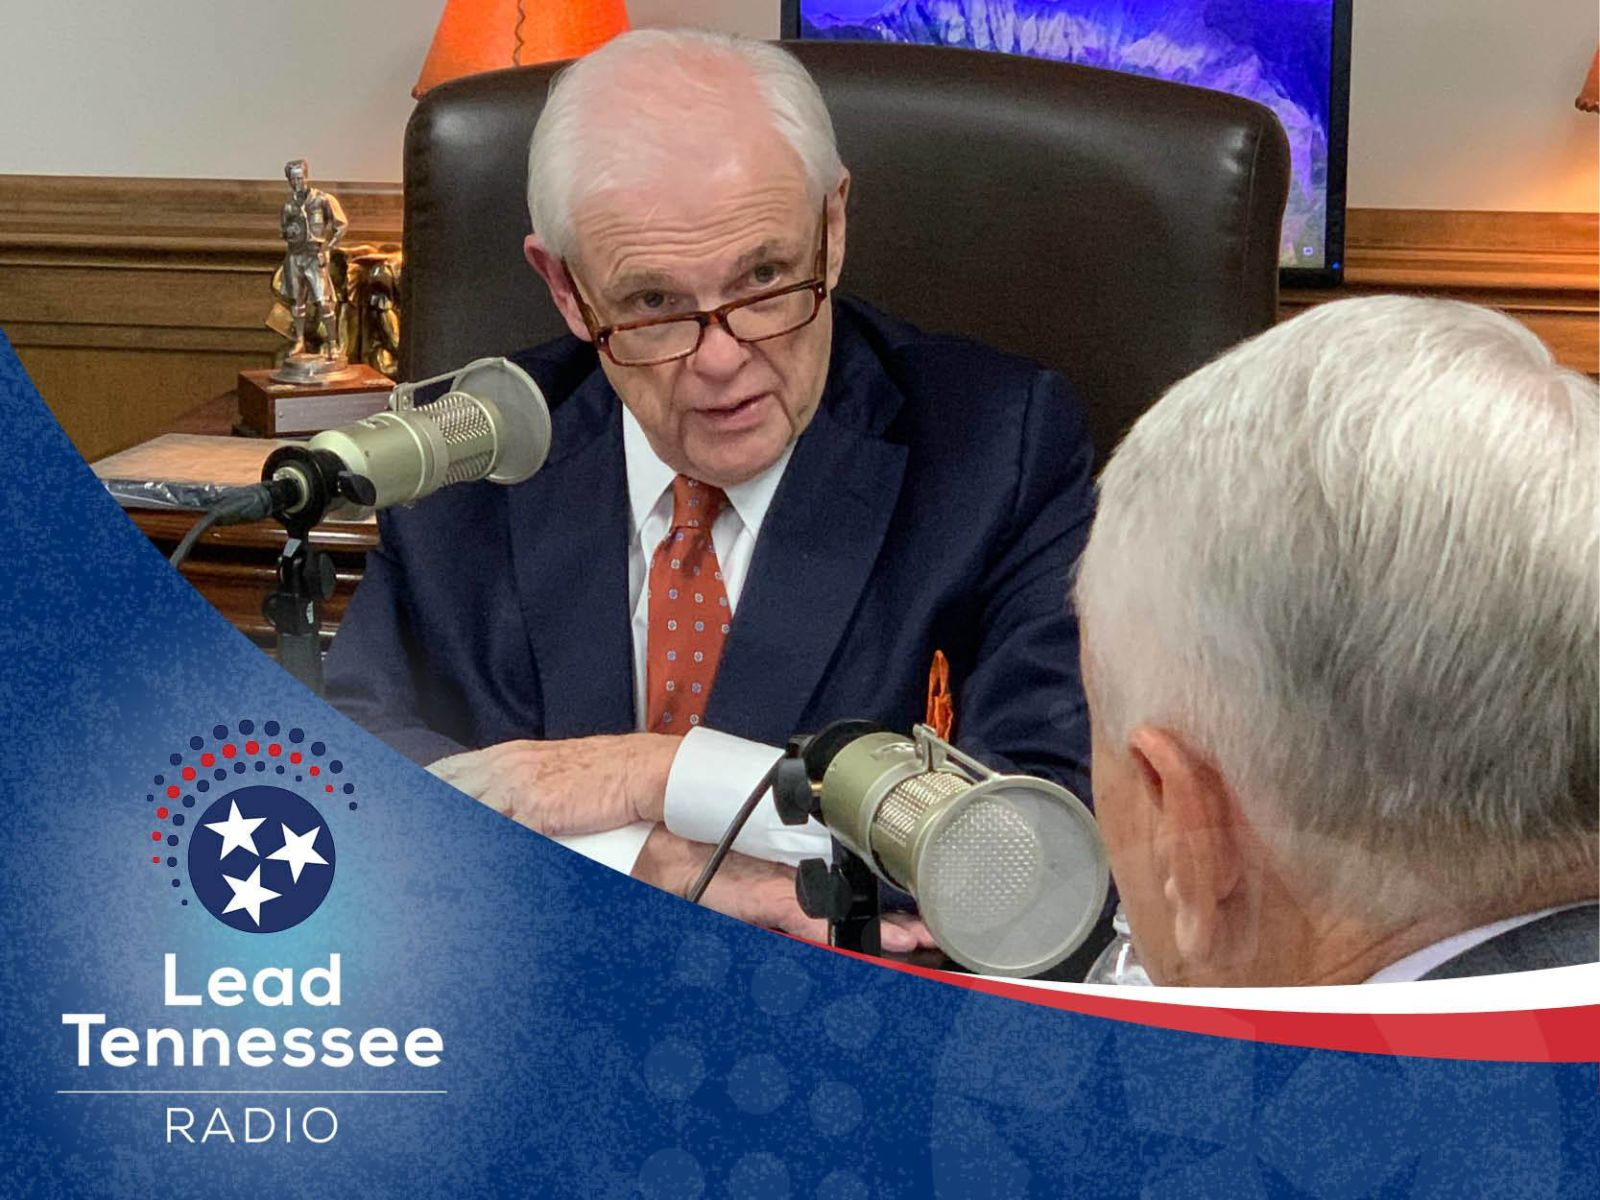 Tennessee Senate Majority Caucus Chairman Ken Yager recording a podcast